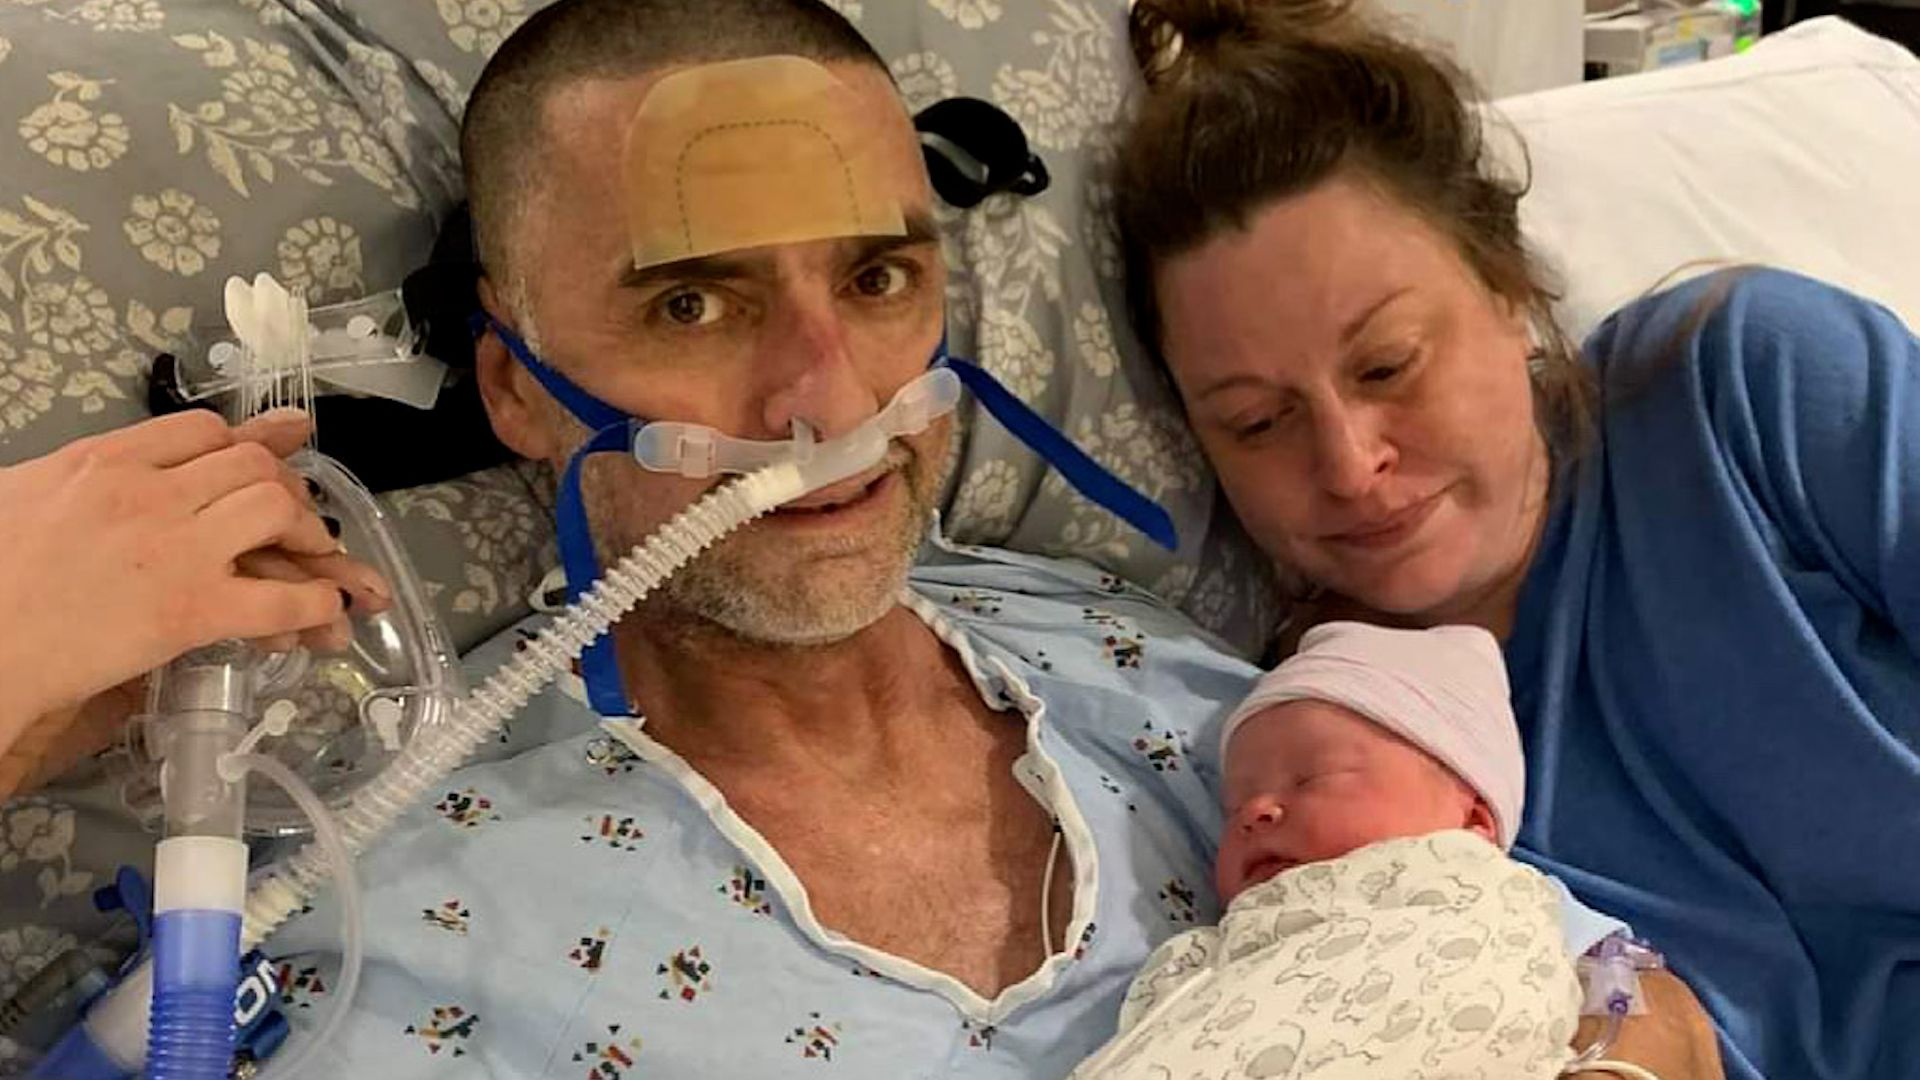 Father battling lung disease meets newborn son, passes away next day